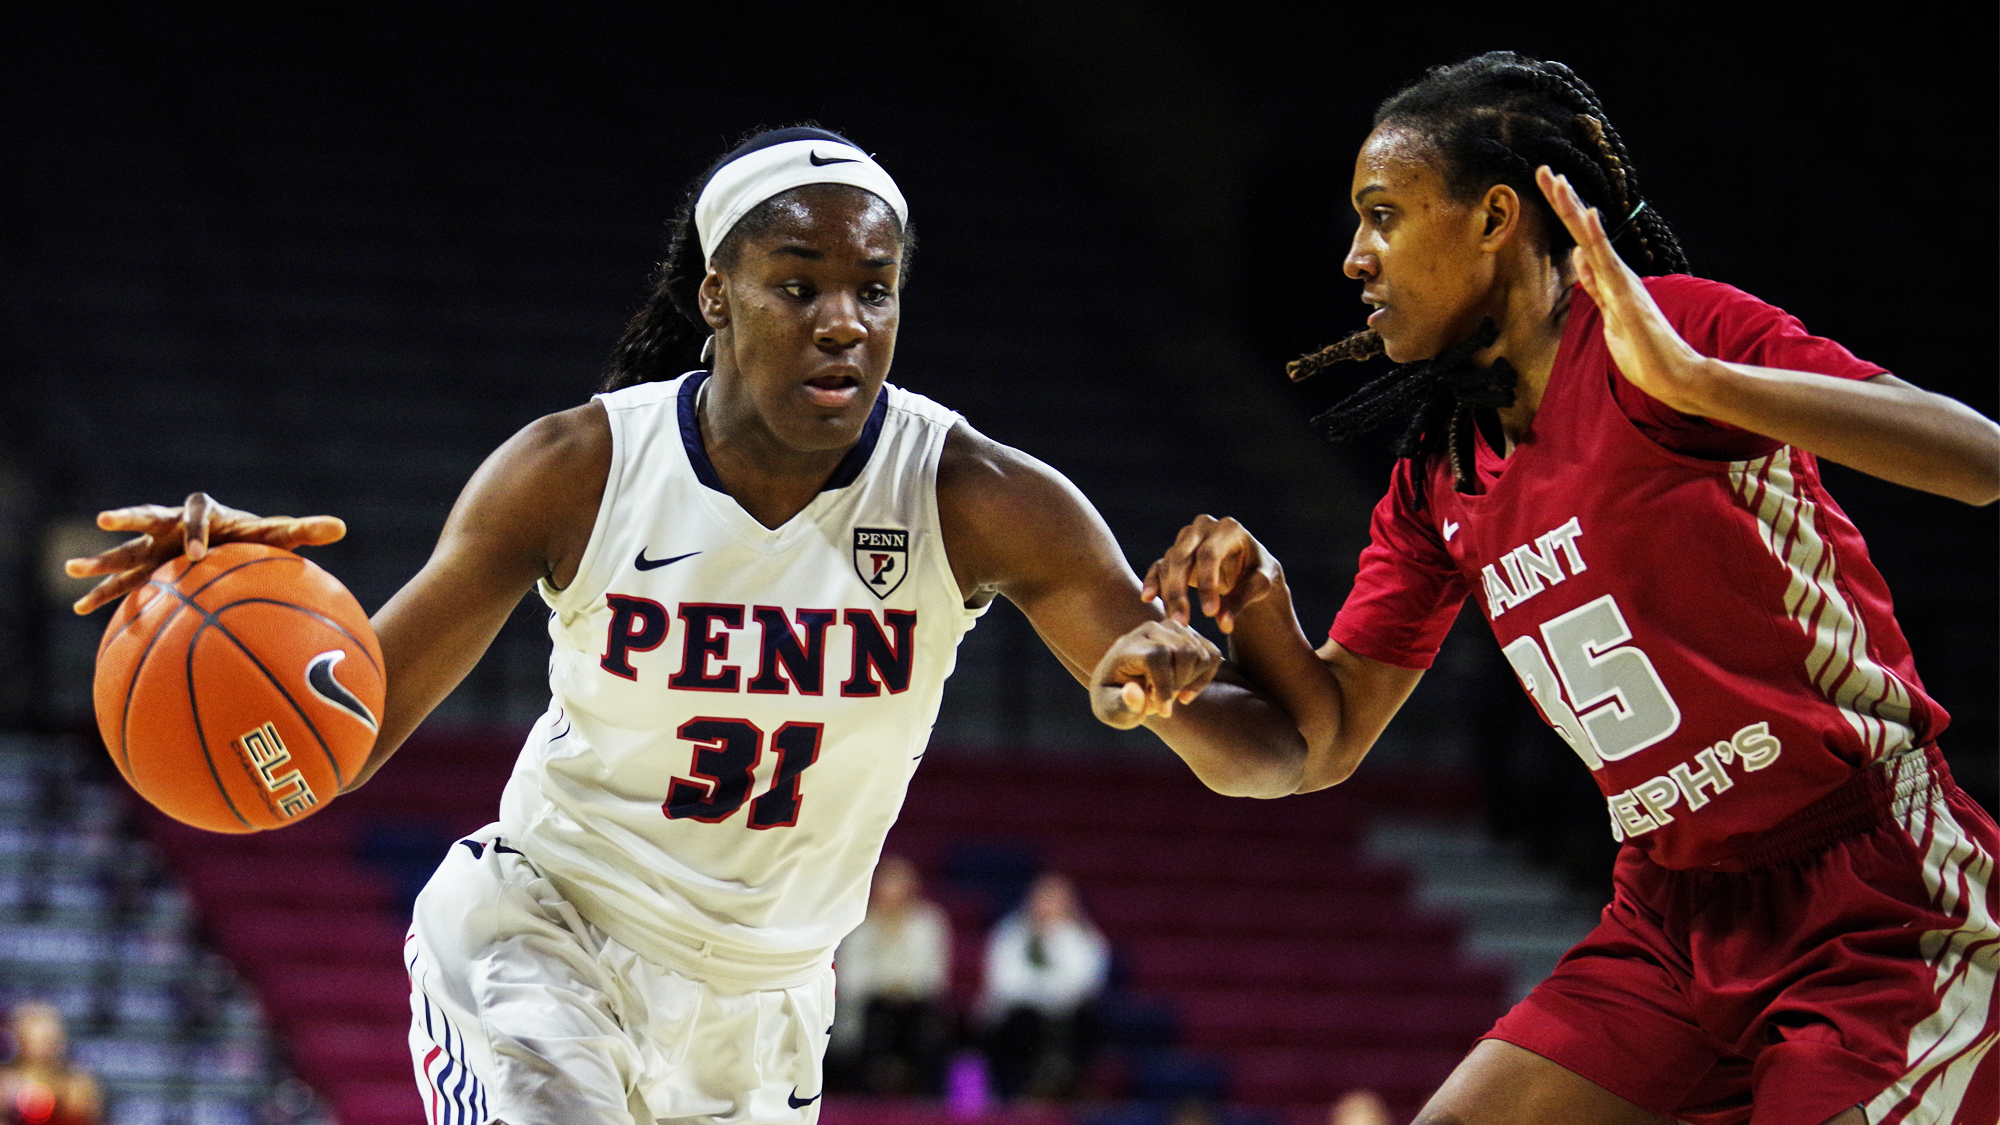 sports shoes 83090 7b440 Women's basketball team sails past Saint Joseph's | Penn Today